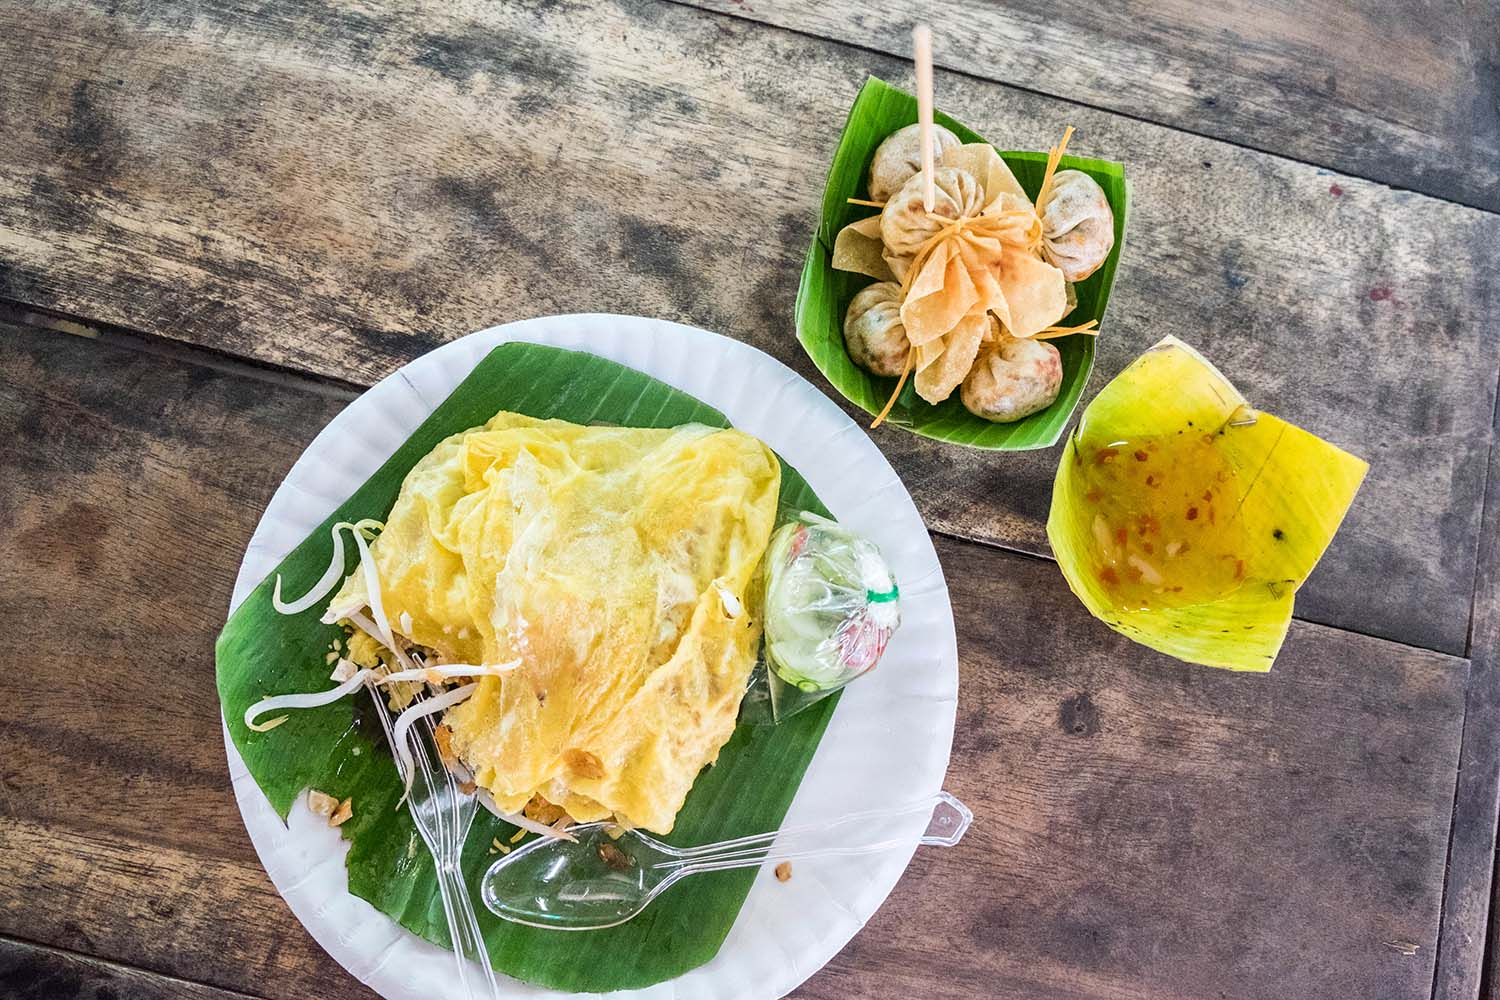 Keen to explore the railway market Bangkok and the floating markets of the city? Join Bangkok Food Tours for an incredible yummy experience in Thailand.